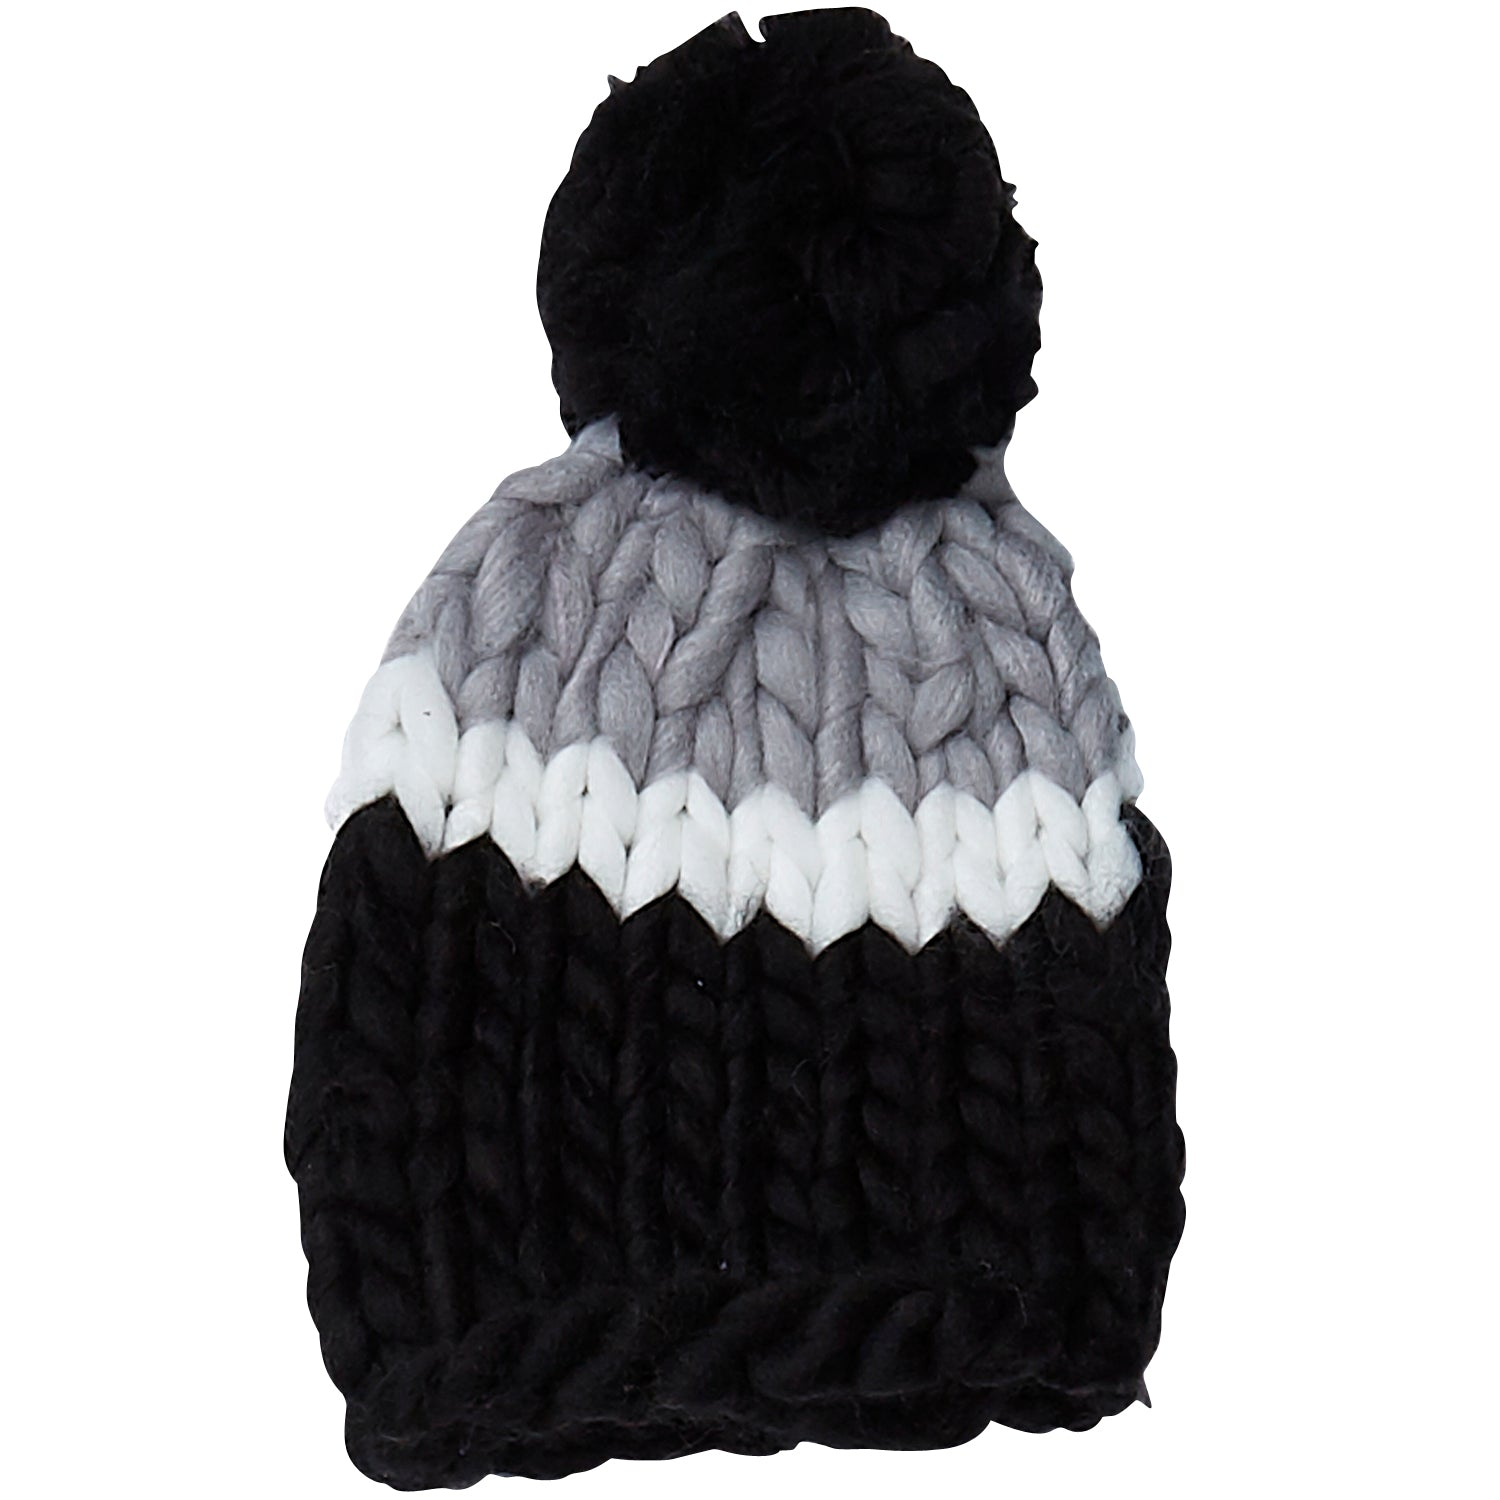 225f48ecfa7 Wholesale Boutique Gifts - Black   Gray Chunky Knit Hat - Tickled Pink